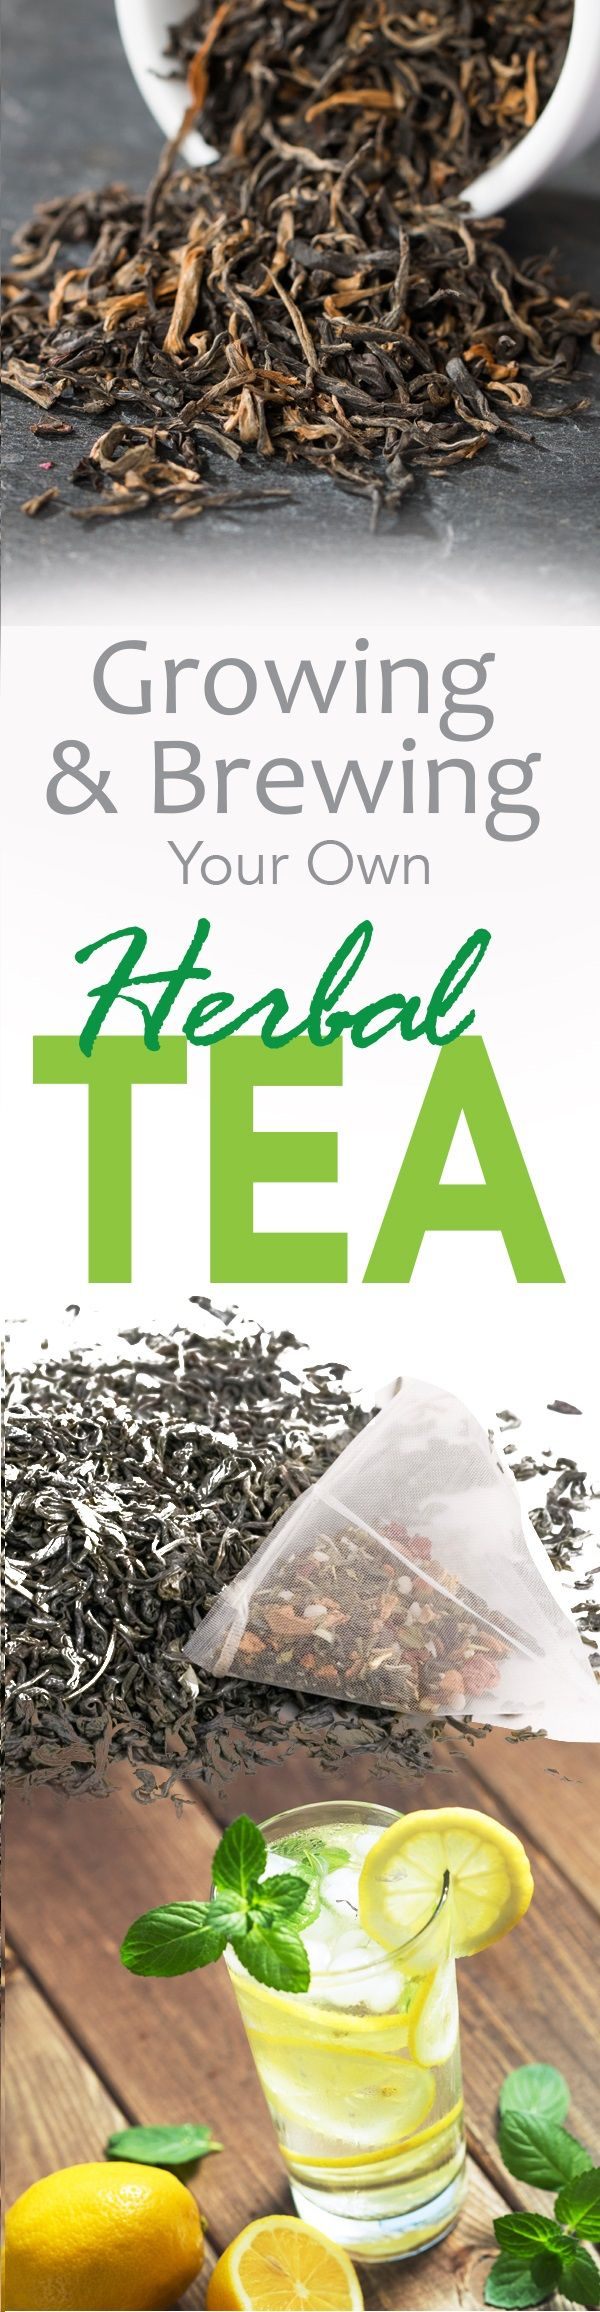 Which tea do you prefer: Chamomile, Mint, Lavender, or Lemon Balm? Click here to learn how to grow and brew your own herbal tea! #tea                                                                                                                                                                                 More